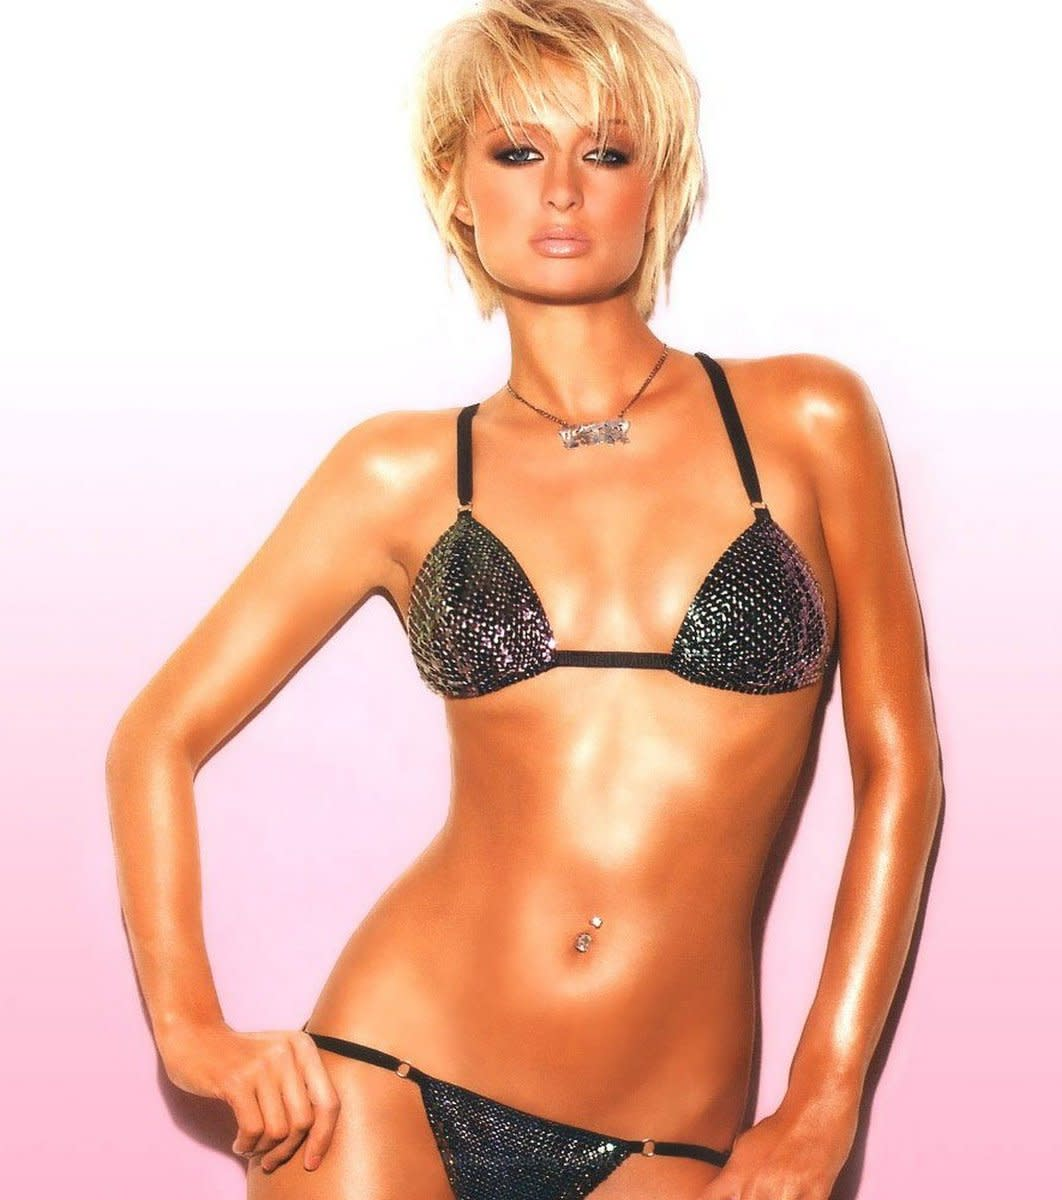 Paris Hilton in a shimmery black bikini